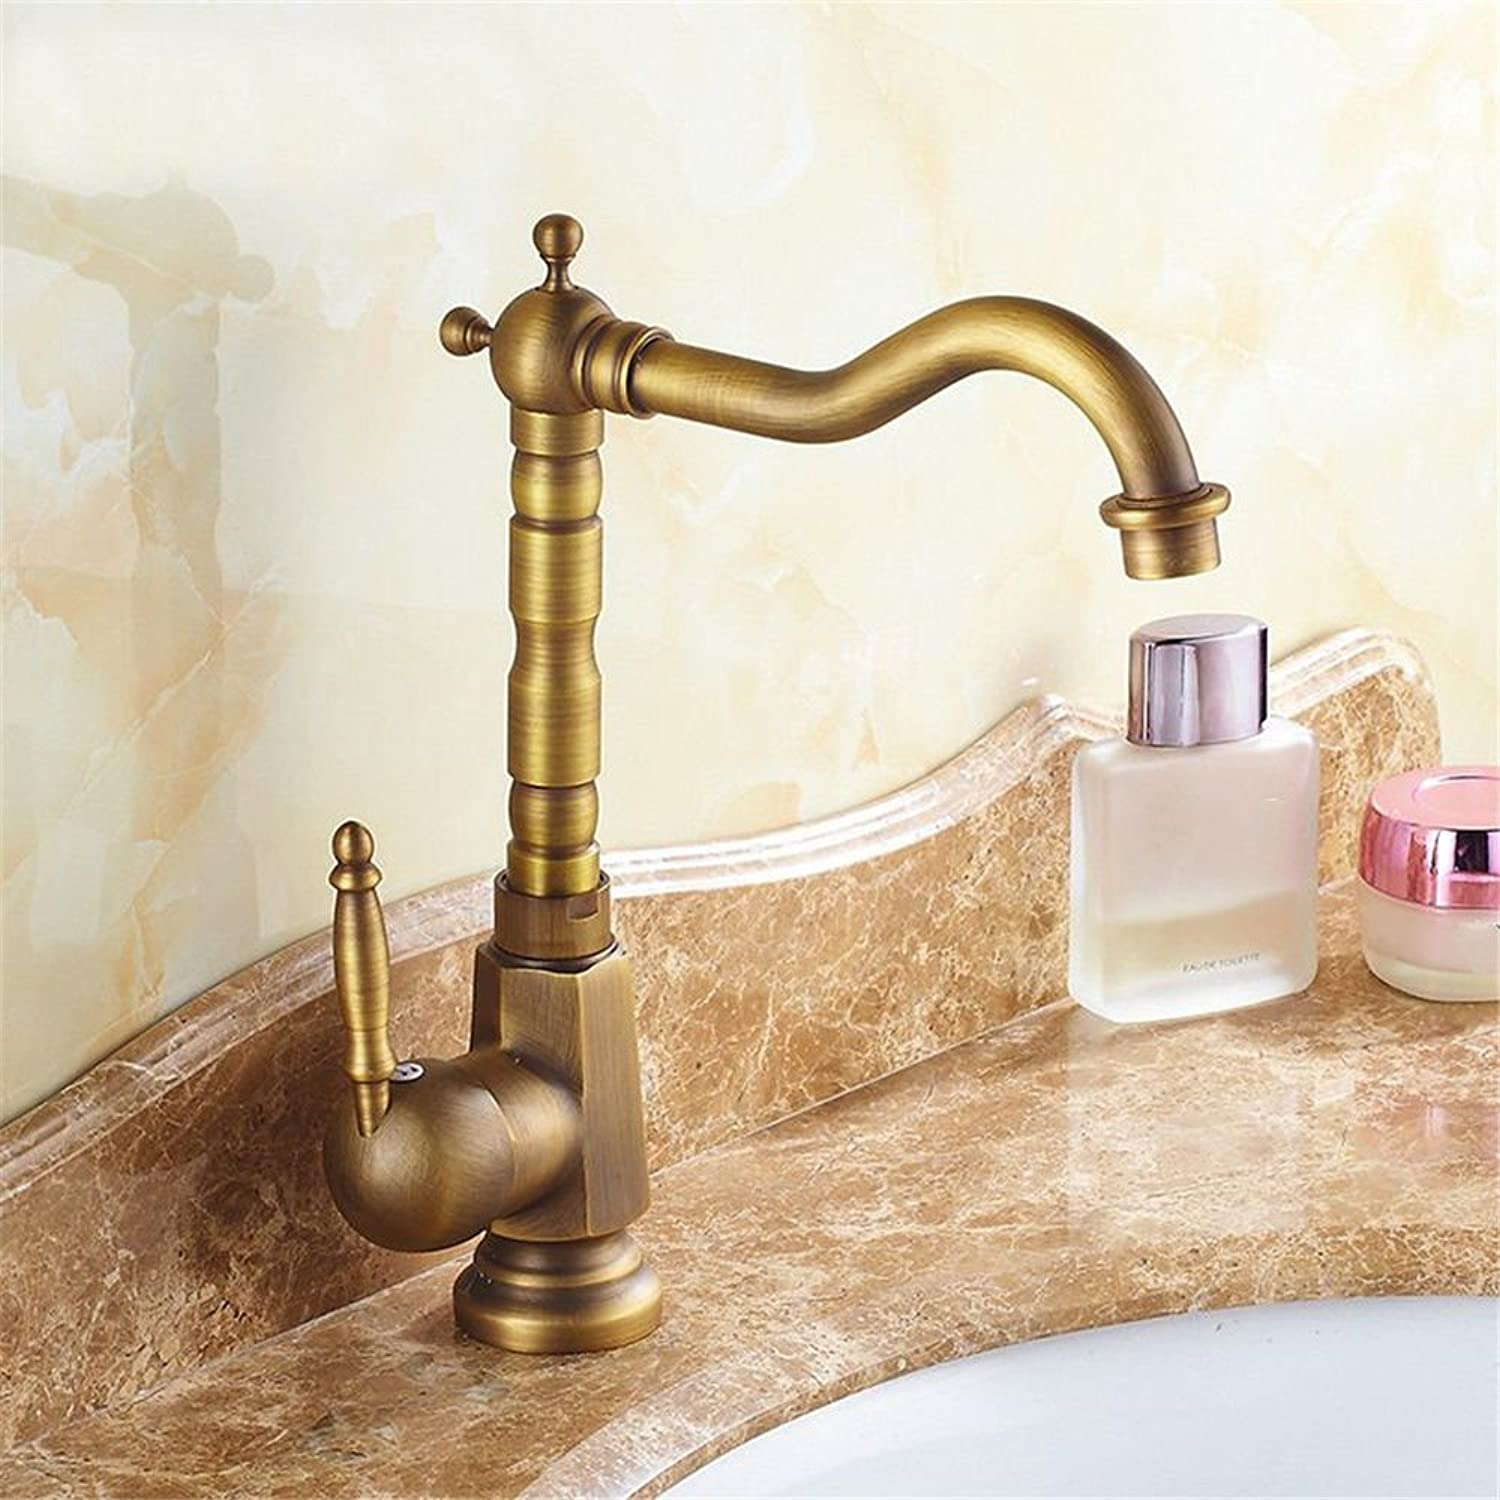 Lpophy Bathroom Sink Mixer Taps Faucet Bath Waterfall Cold and Hot Water Tap for Washroom Bathroom and Kitchen Antique Copper Hot and Cold Valve 360° redating Single Hole Single Handle C